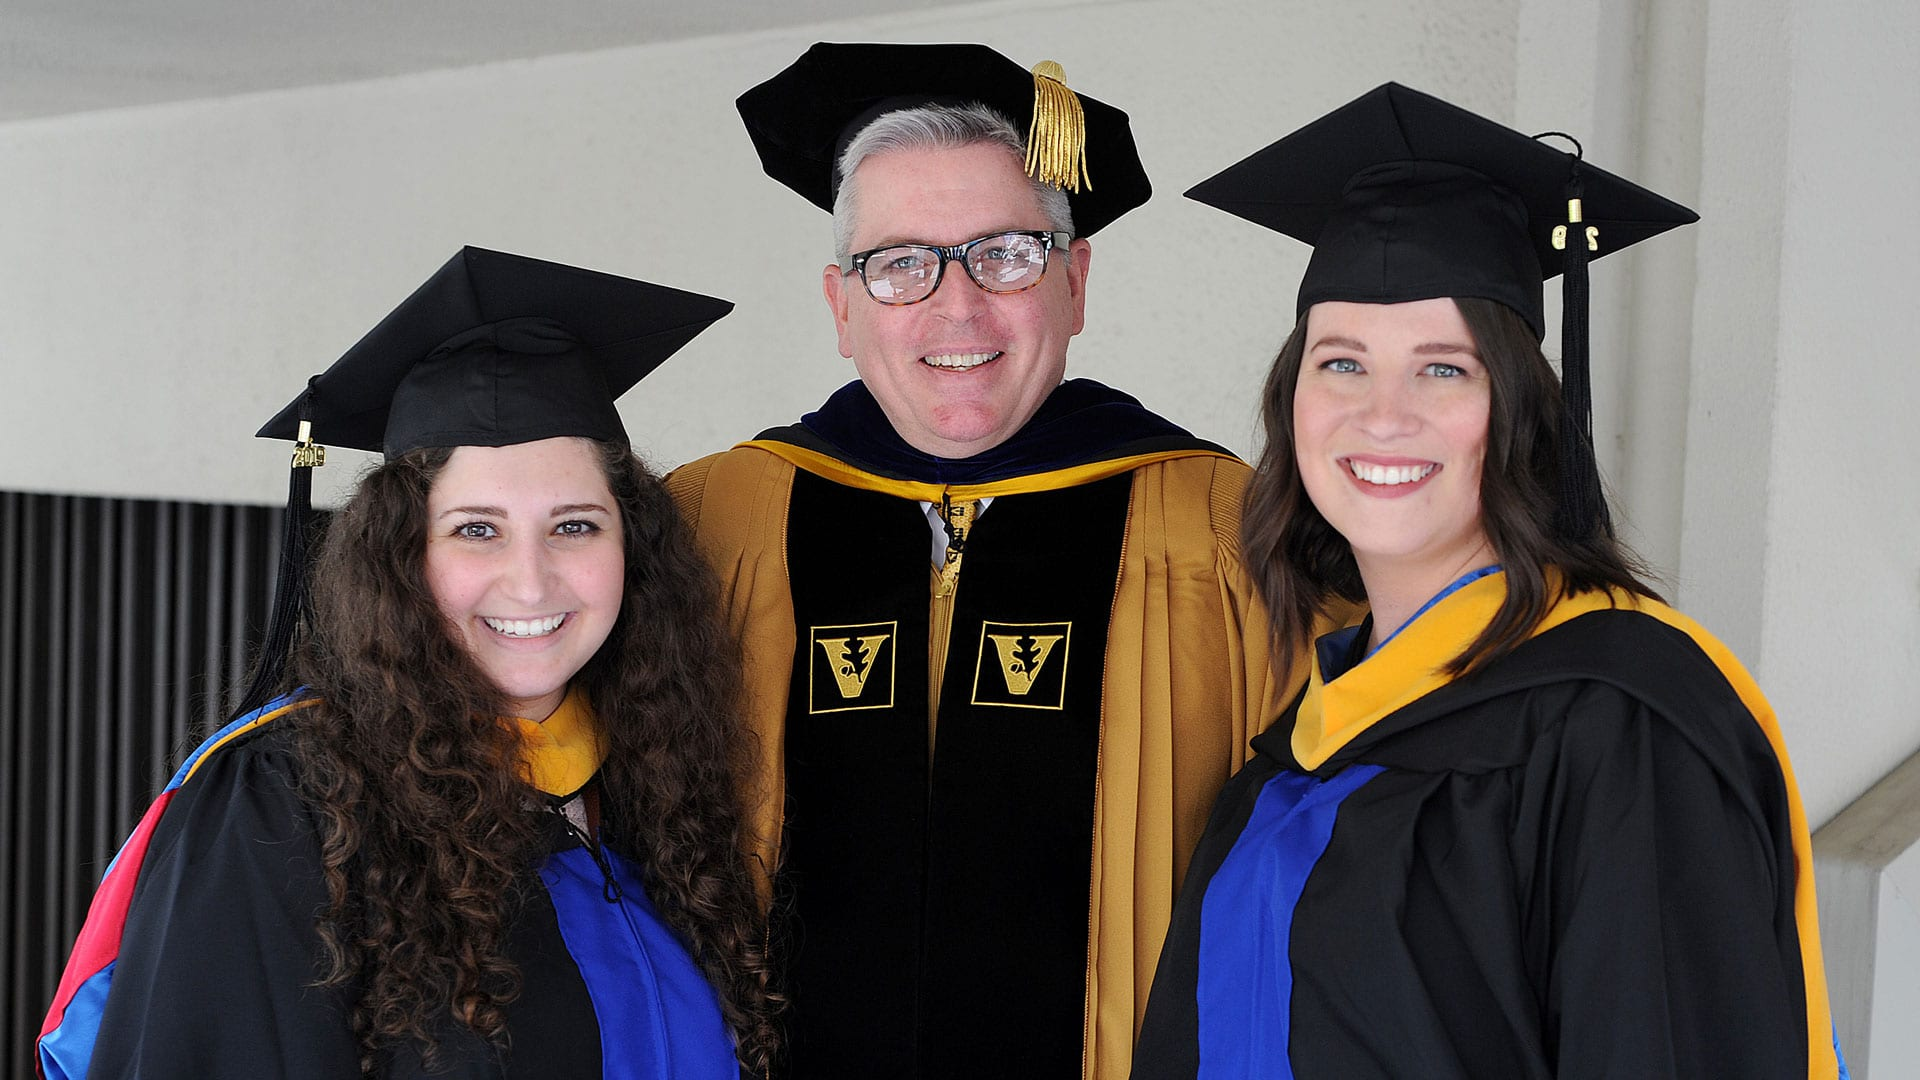 Graduate students pose with Dr. Boyles at 2019 Commencement